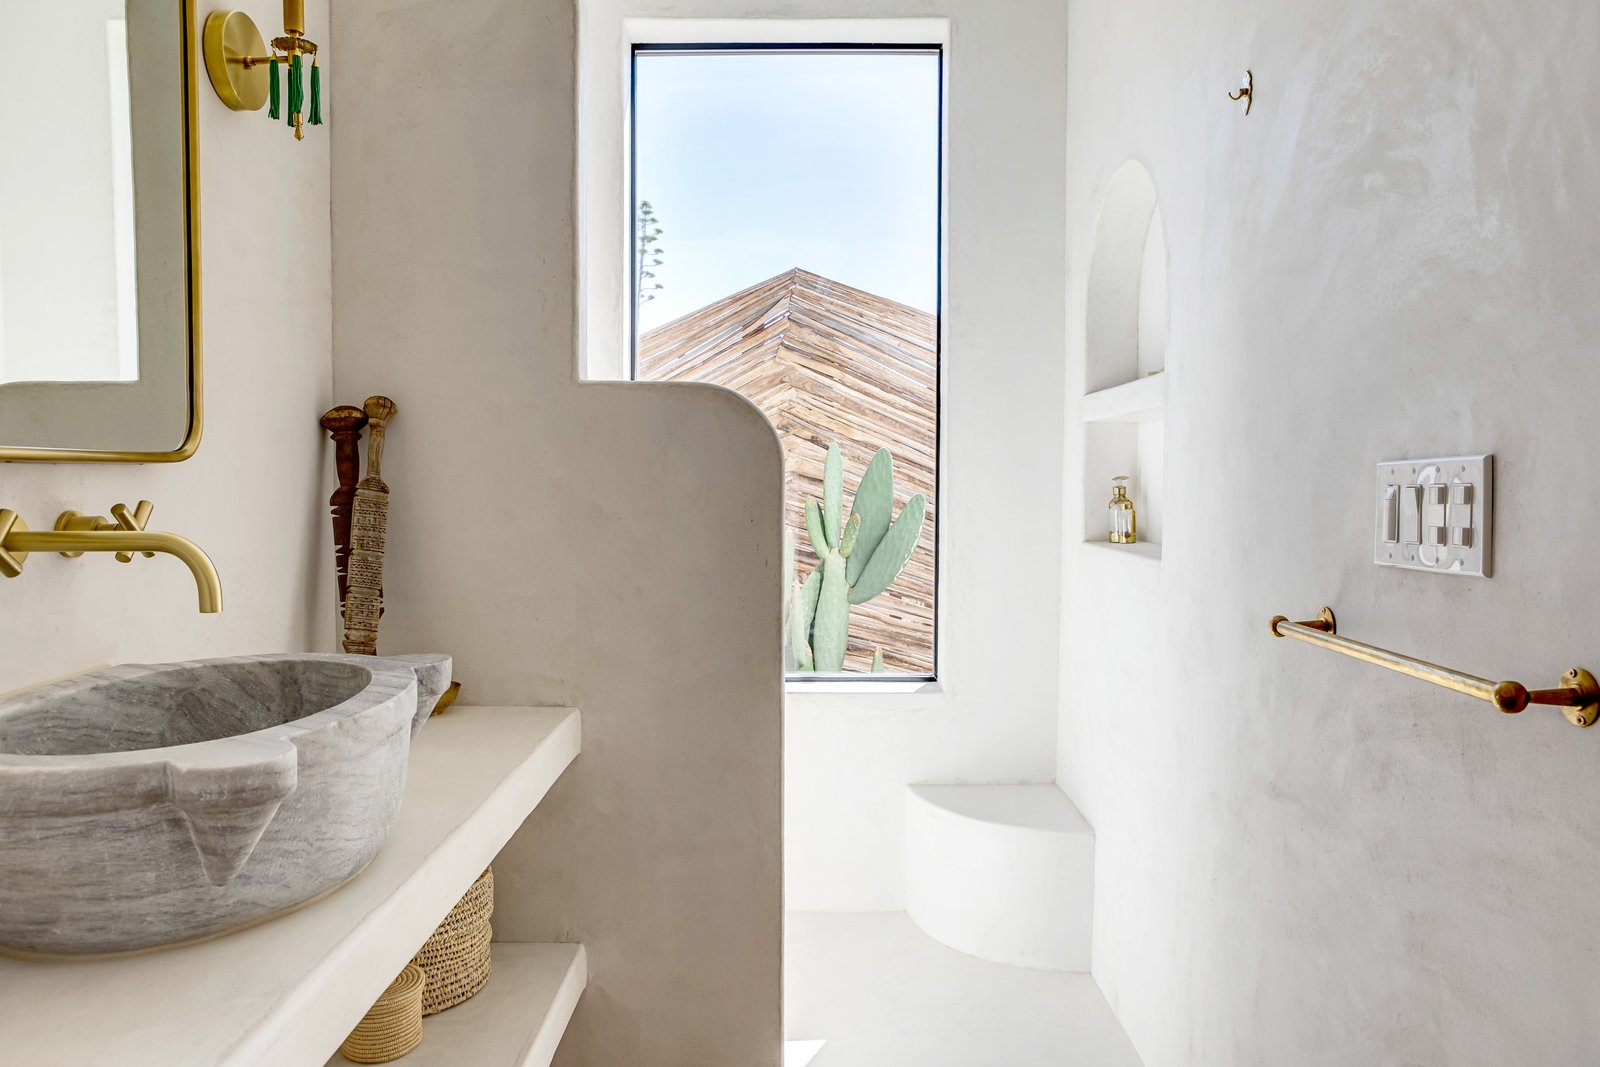 In the en-suite bathroom of a California vacation home, the walls and the shower are coated in tadelakt, reflecting the owners' inspiration from the local landscape and travels abroad.  Photo 4 of 7 in 7 Moroccan-Style Spaces With Tadelakt Accents from Construction Diary: A Couple Build a Moroccan-Inspired Retreat in Joshua Tree